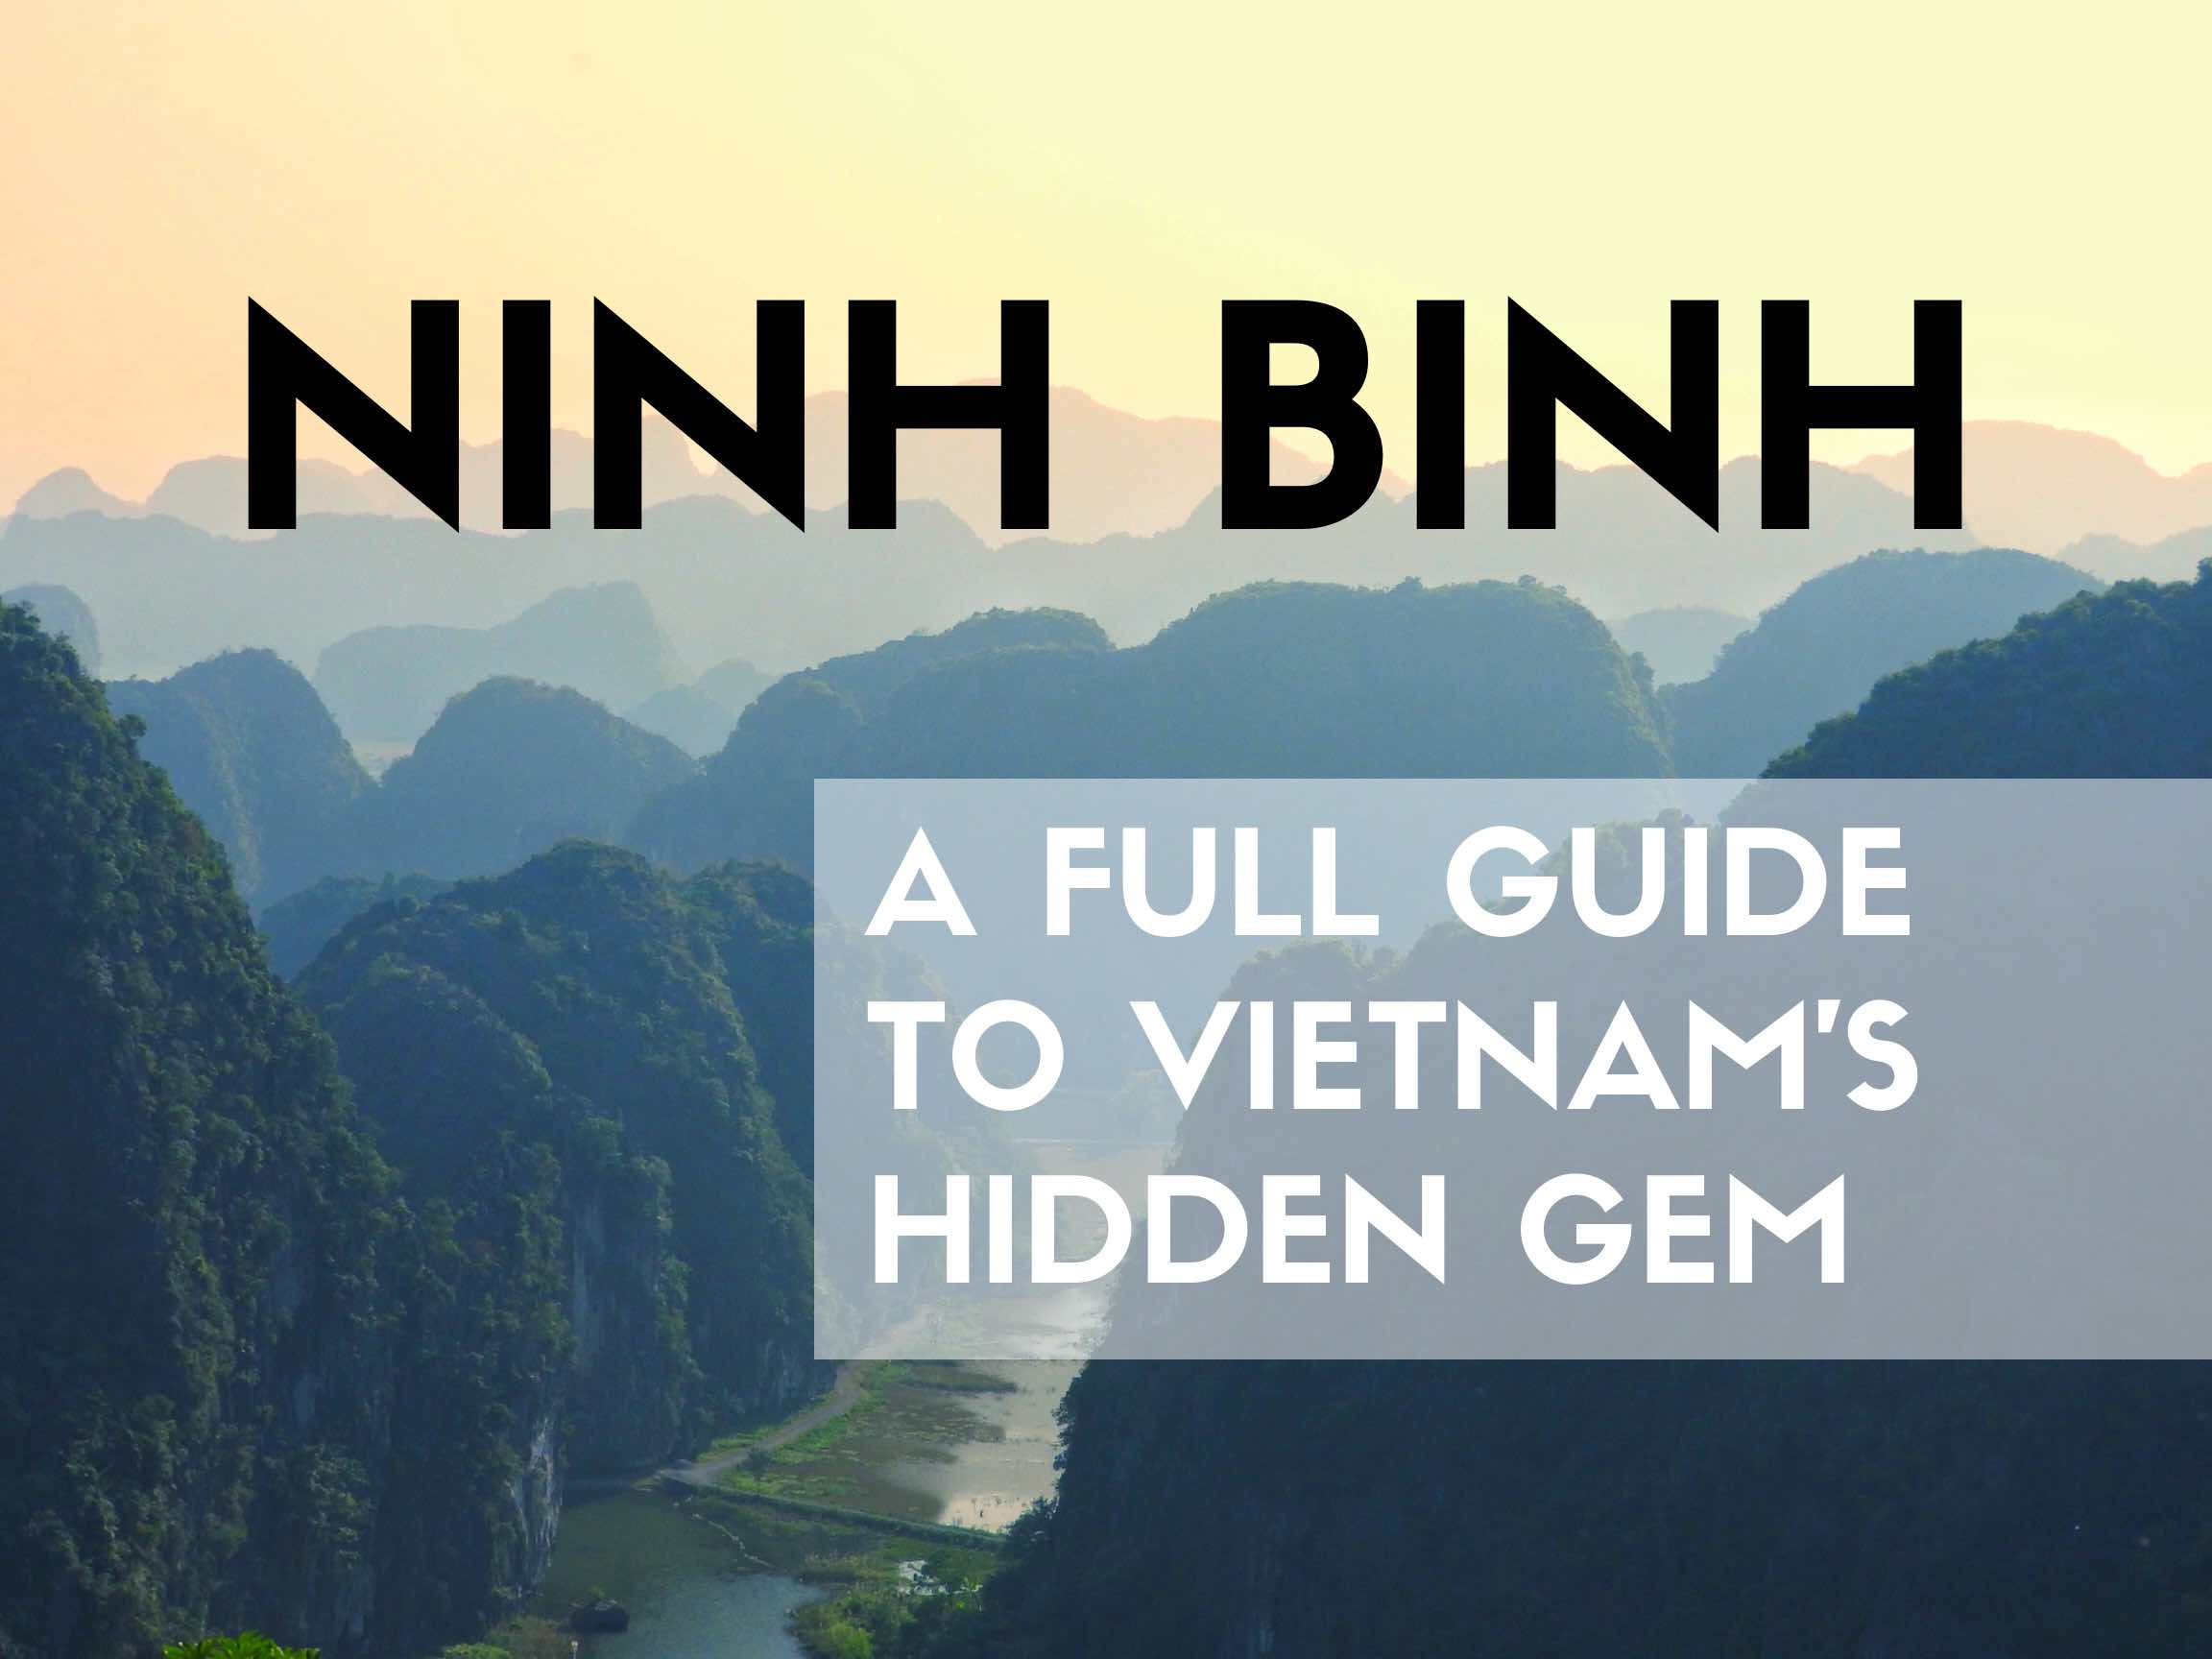 Ninh Binh: A Detailed Travel Guide to Vietnam's Hidden Gem